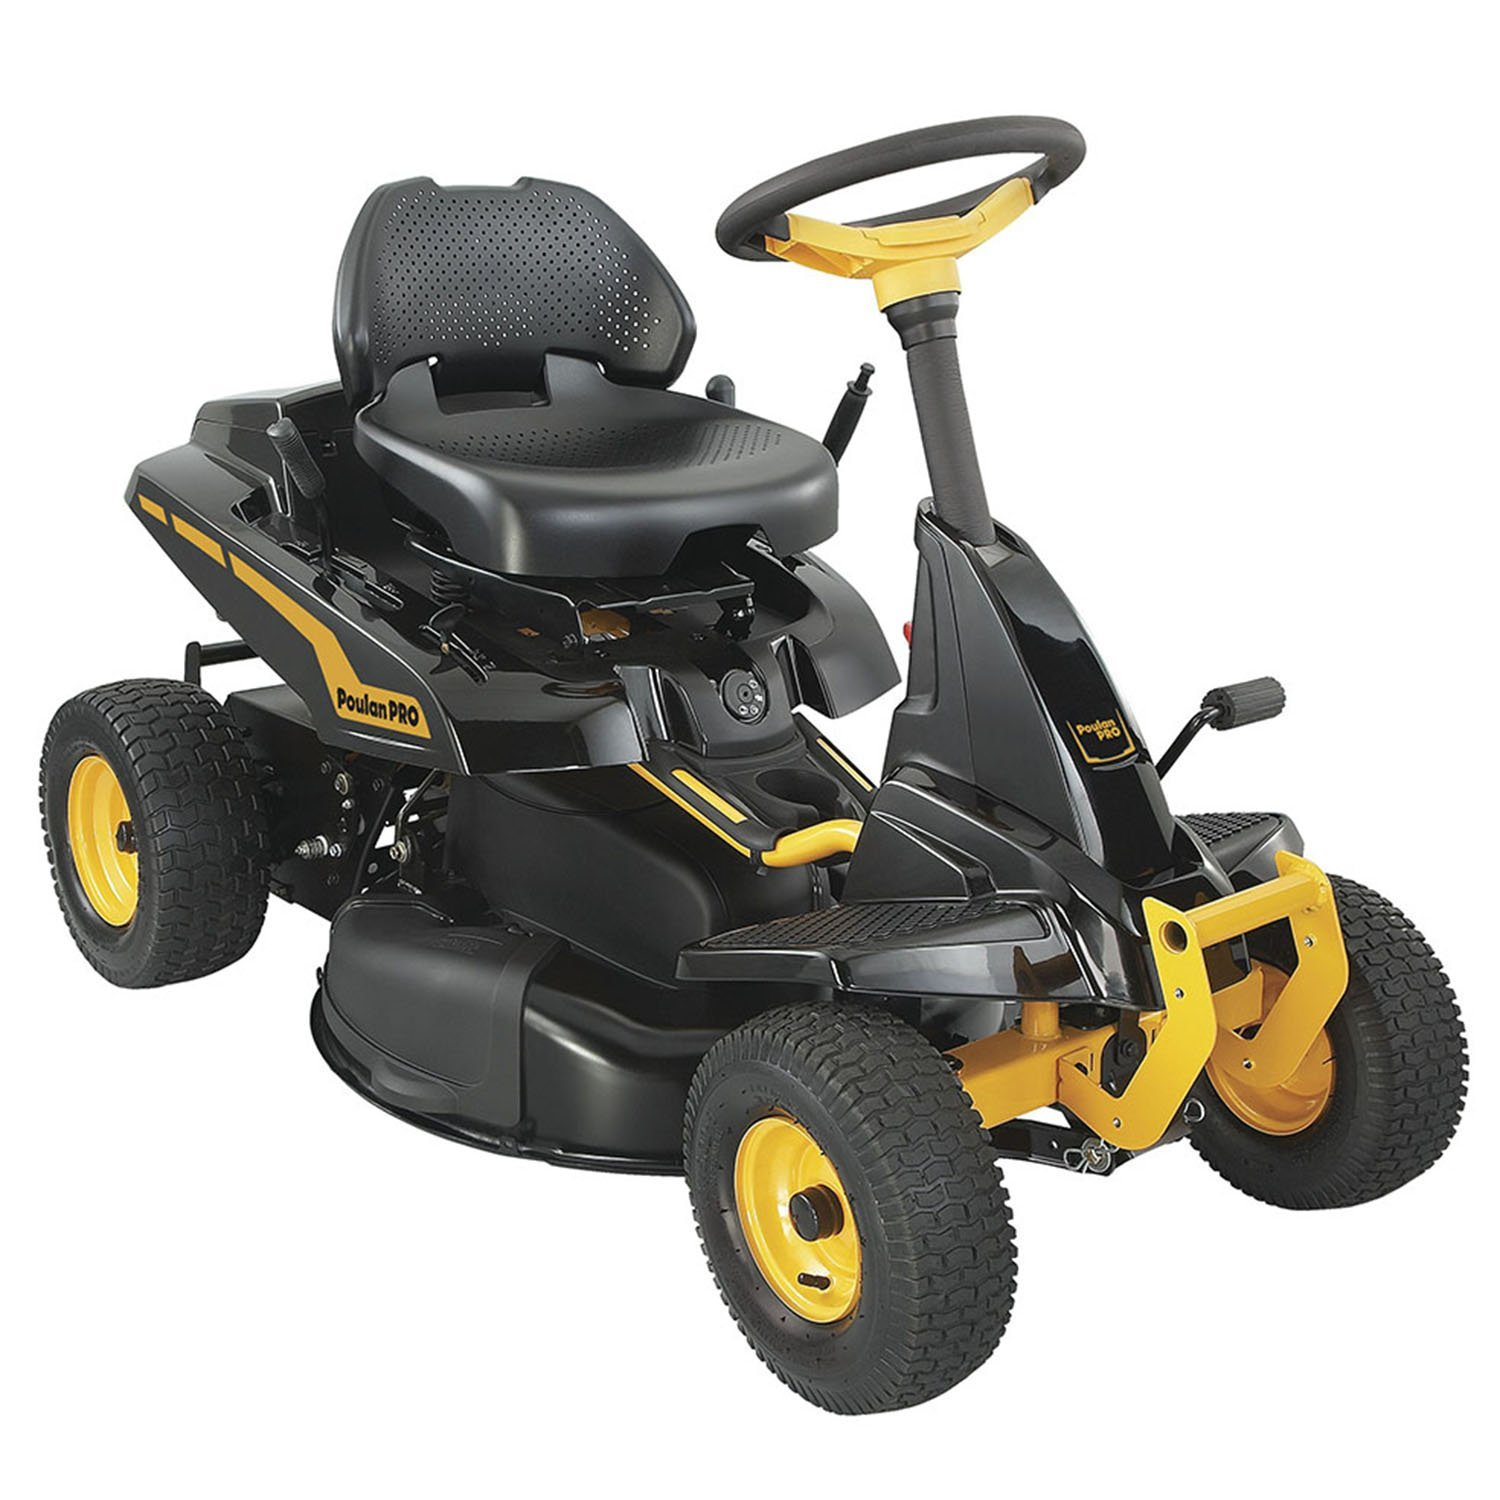 Small Riding Lawn Mower Lawnmower